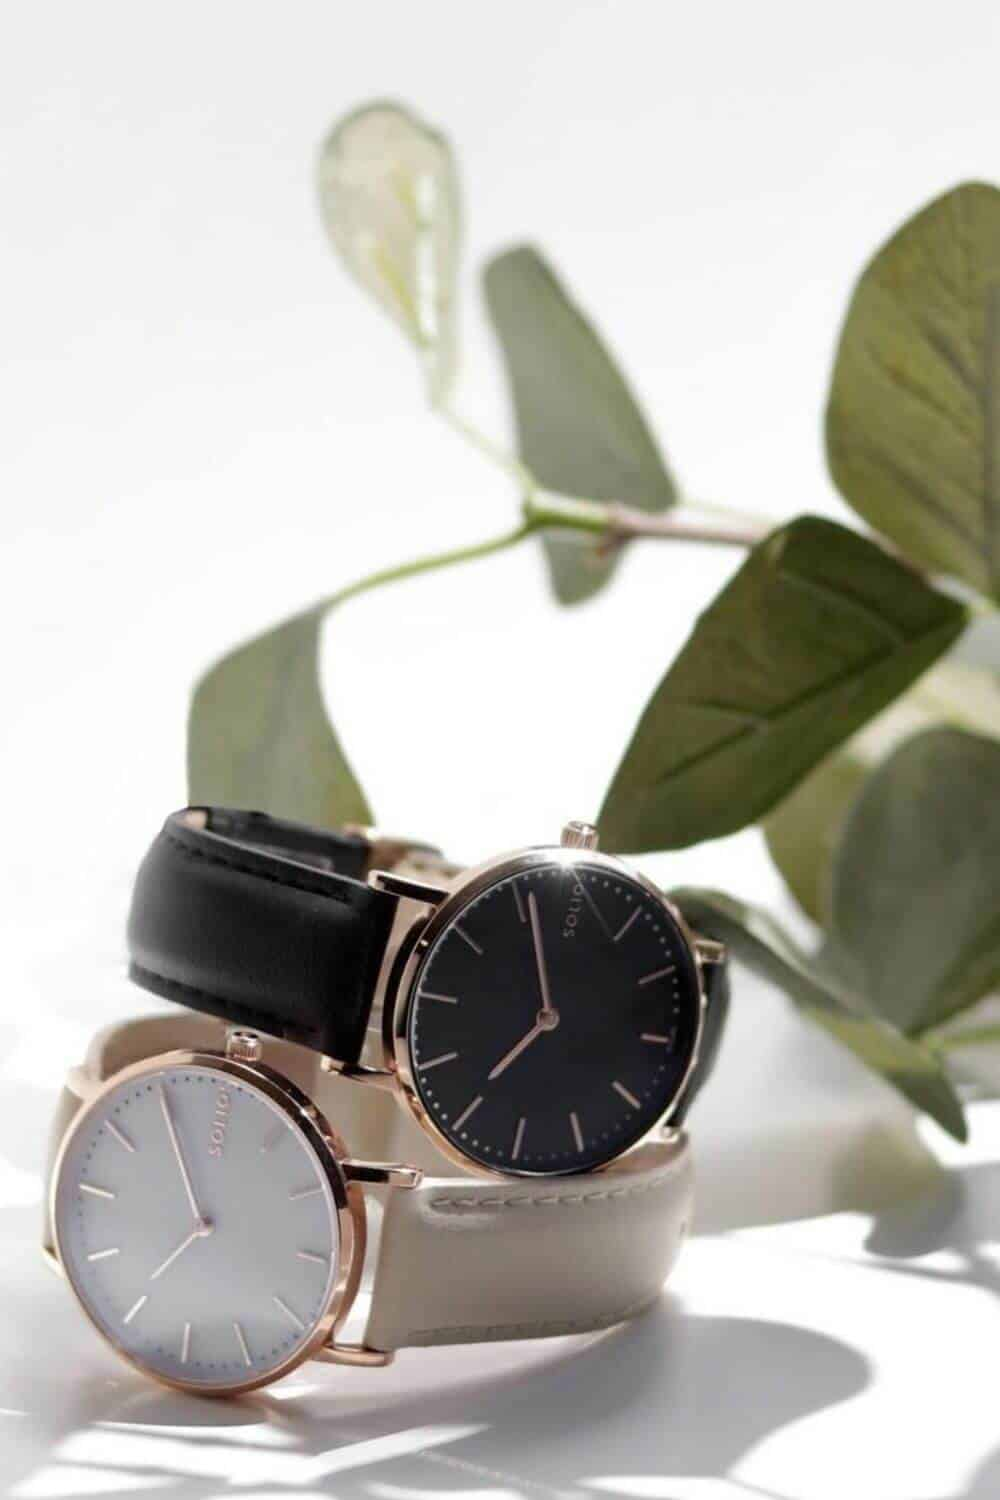 Sustainable and Eco Friendly Watches Image by Solios #ecofriendlywatches #sustainablewatches #sustainablejungle